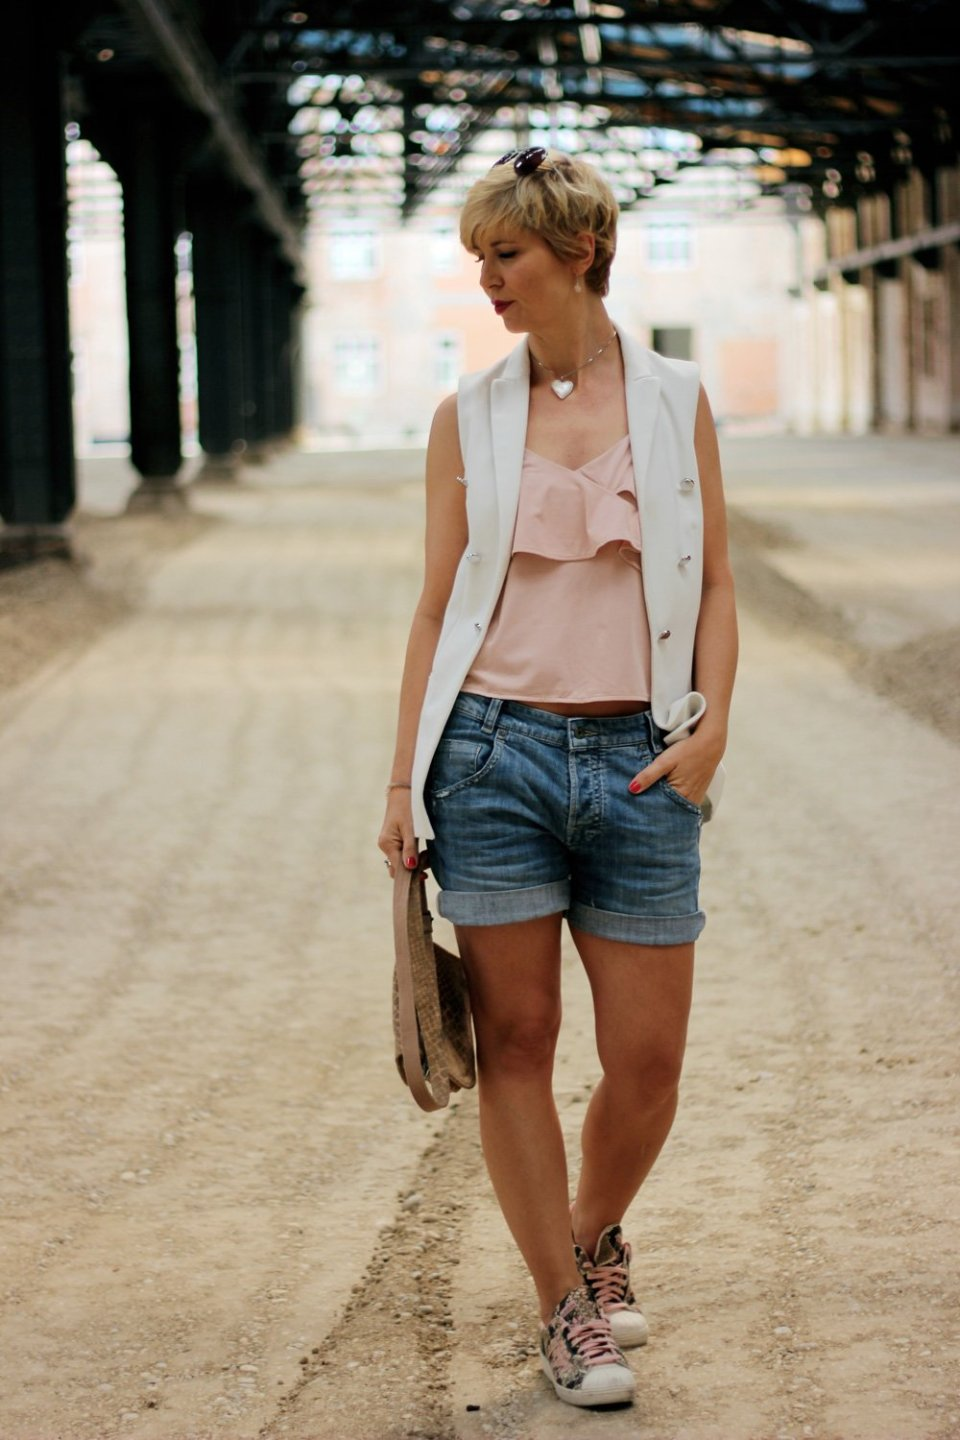 conny-doll-lifestyle: Spaetsommerlook, Shorts im Spätsommer, Weste, Top, Volants, Sneaker, 40plus, casual, sportlich